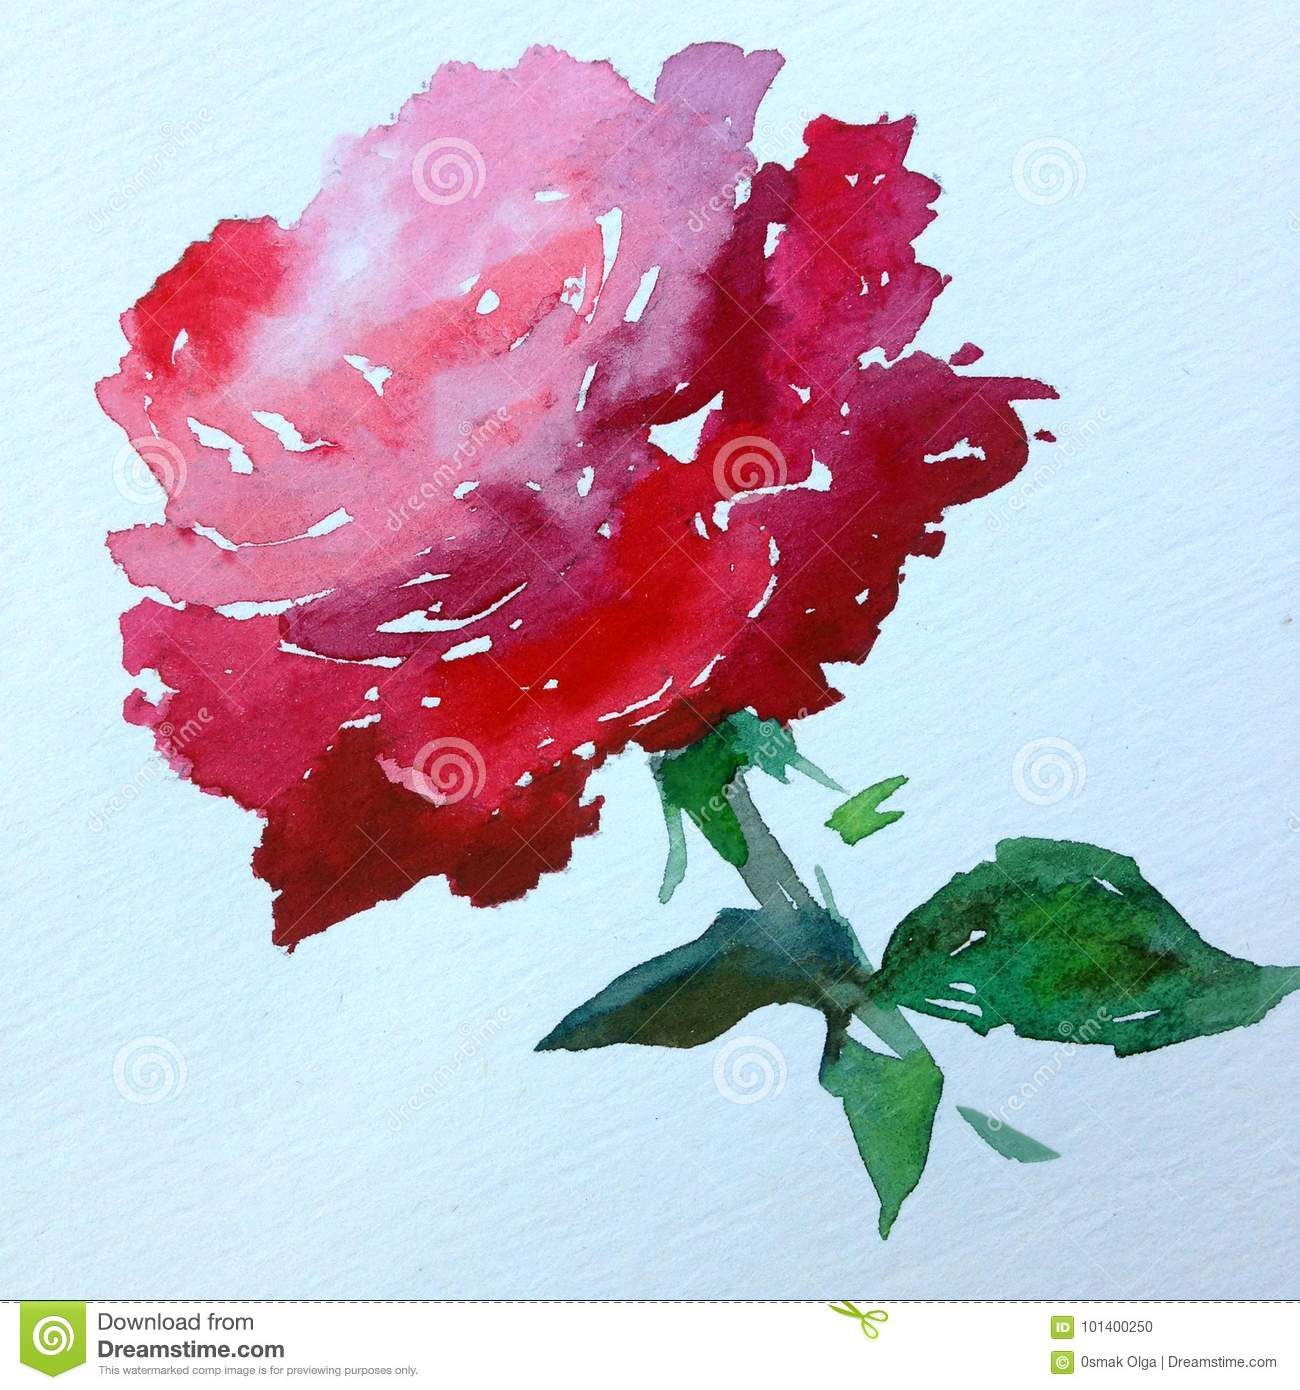 Watercolor Art Background Abstract Red Pink Single Flower Rose Colorful Textured